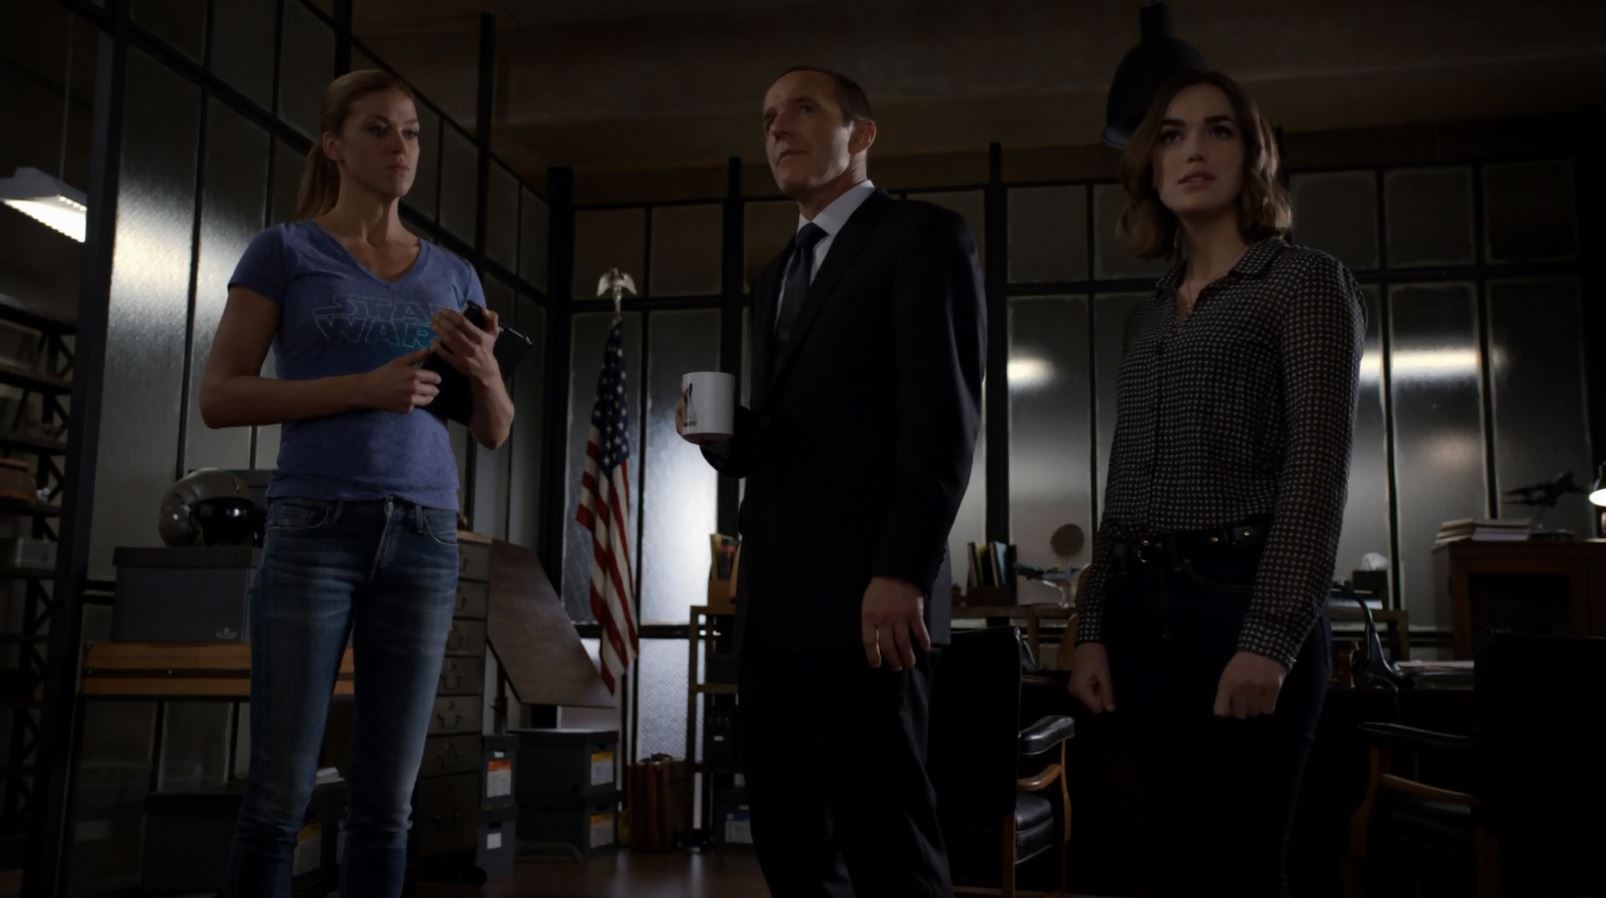 Marvel's Agents of S.H.I.E.L.D. - 02x06 - A Fractured House